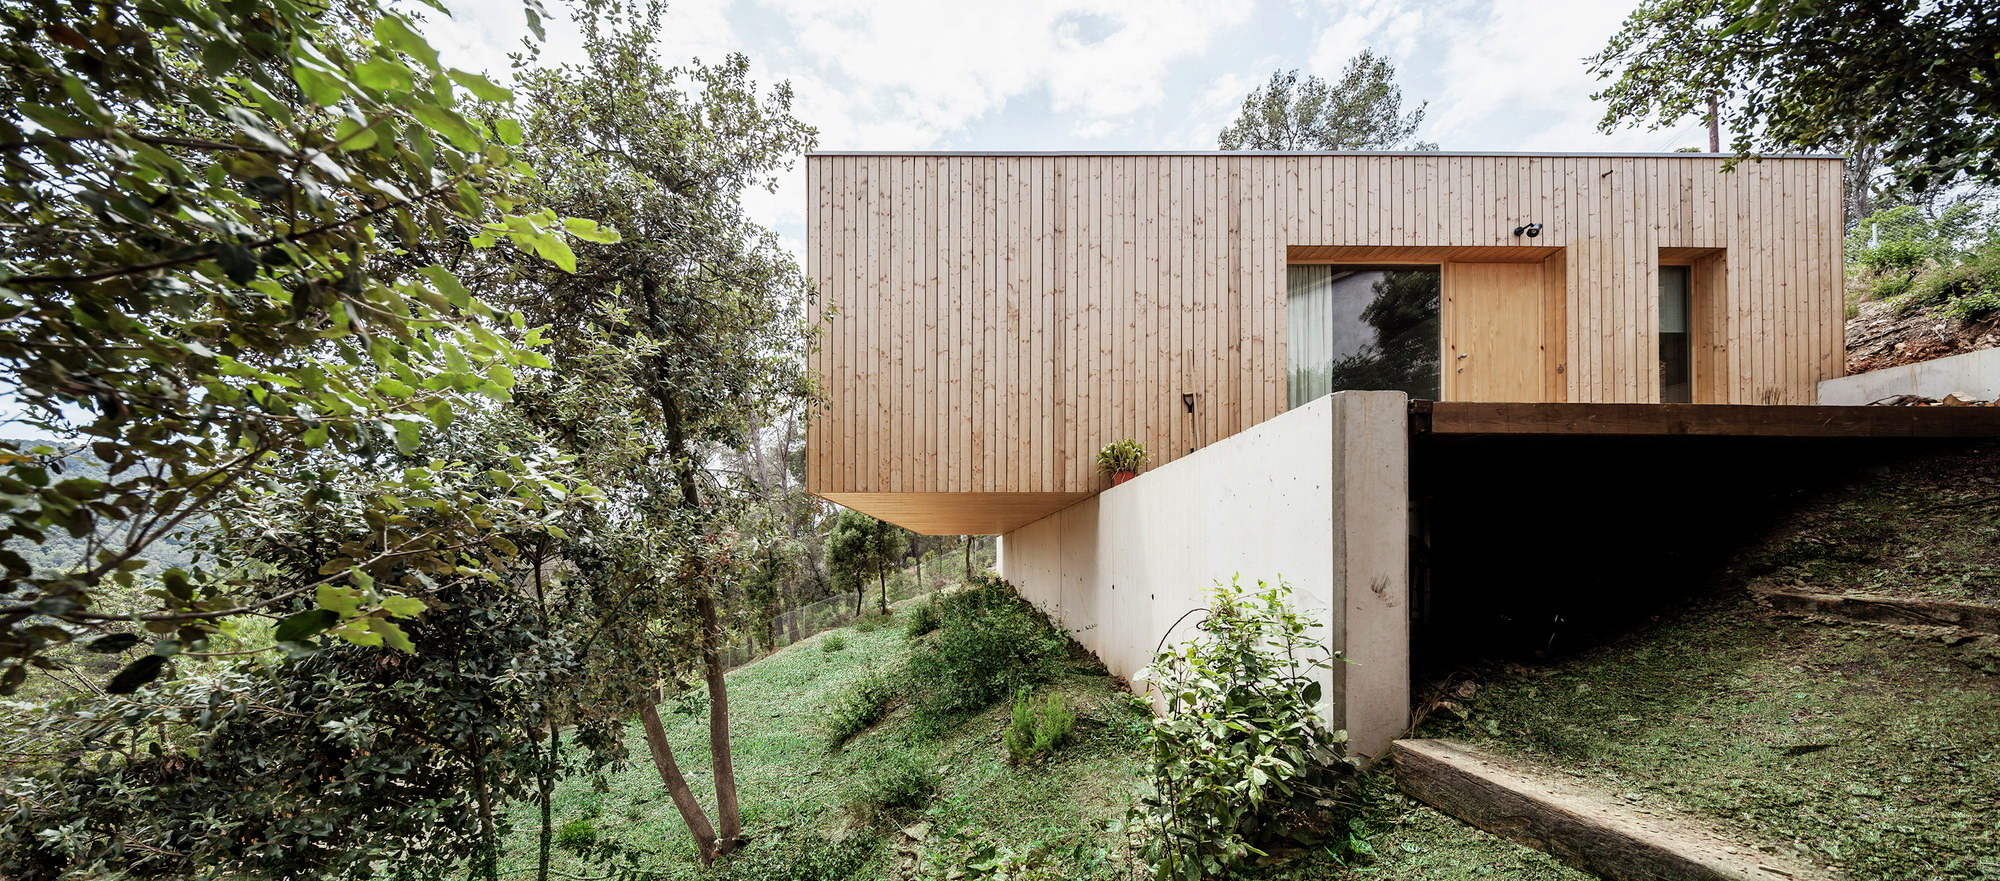 House LLP by Alventosa Morell Arquitectes